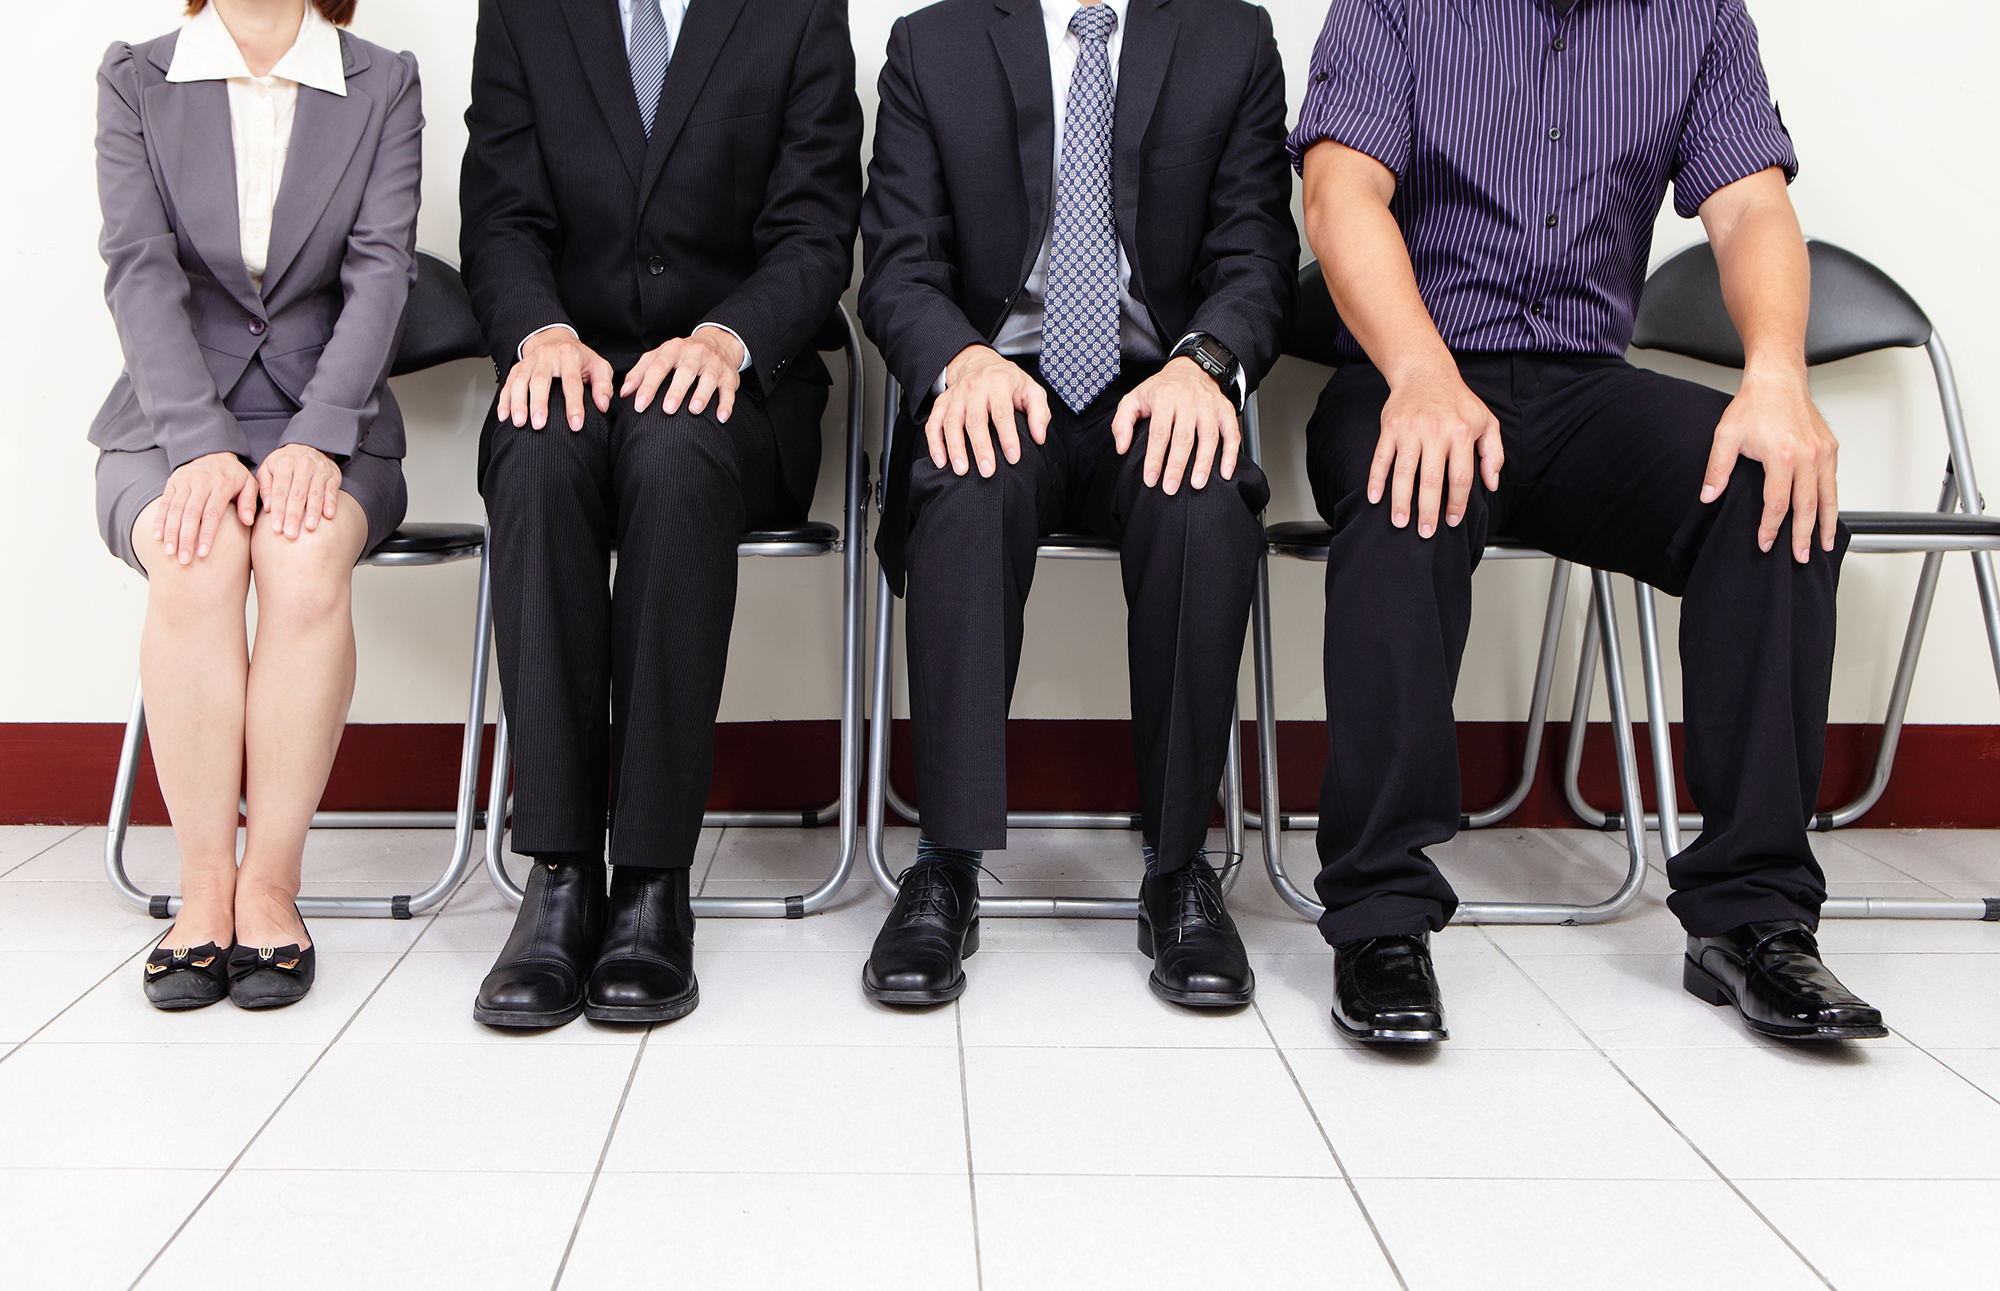 Interview candidates. (Image: Shutterstock)